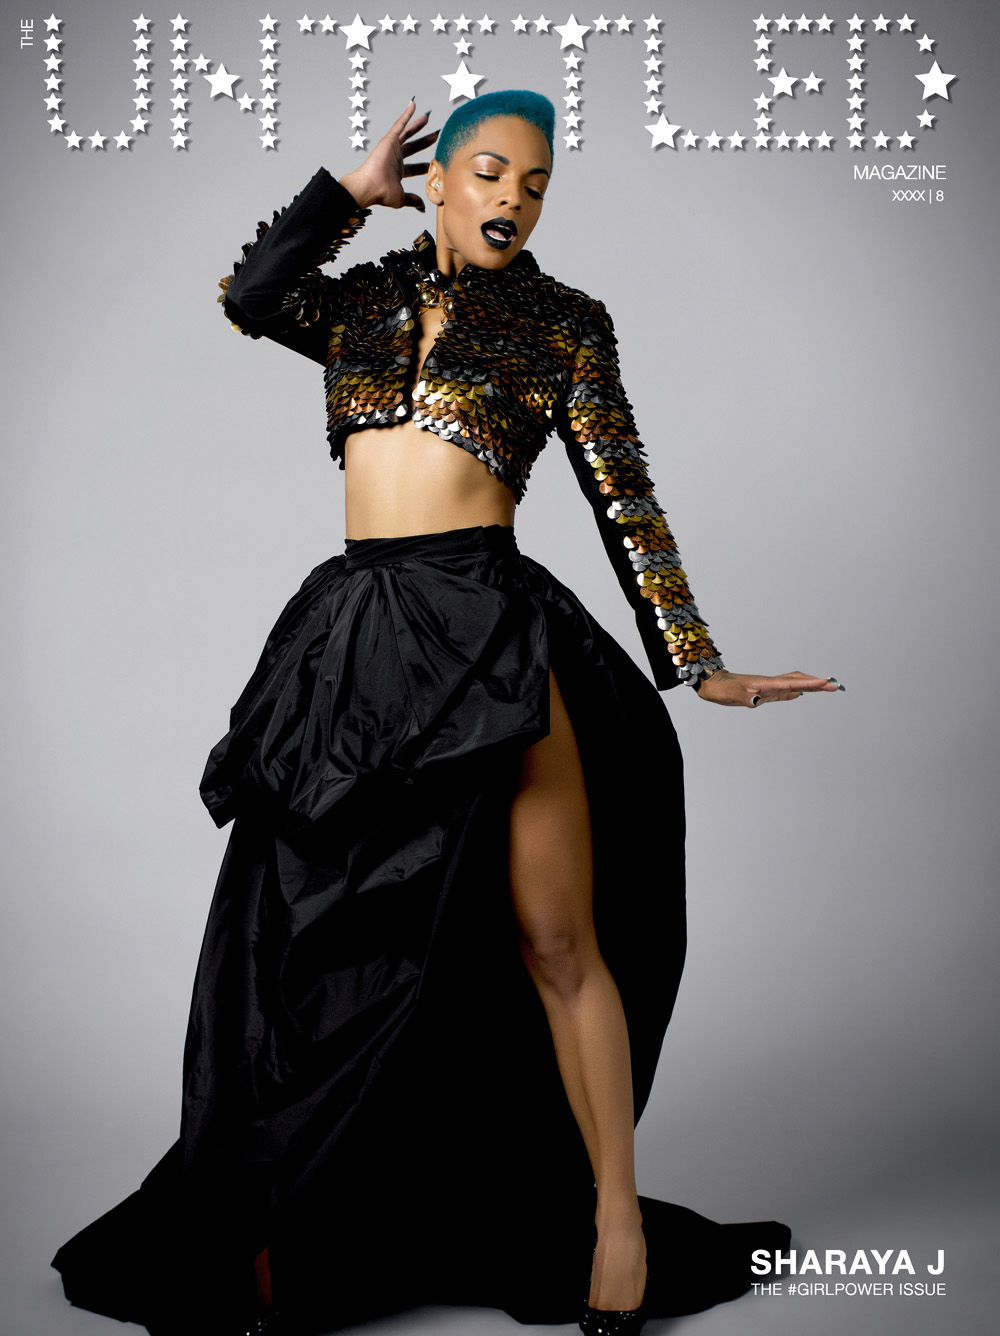 The-Untitled-Magazine-Issue-8-Sharaya-J-Cover-Highres-lr.jpg